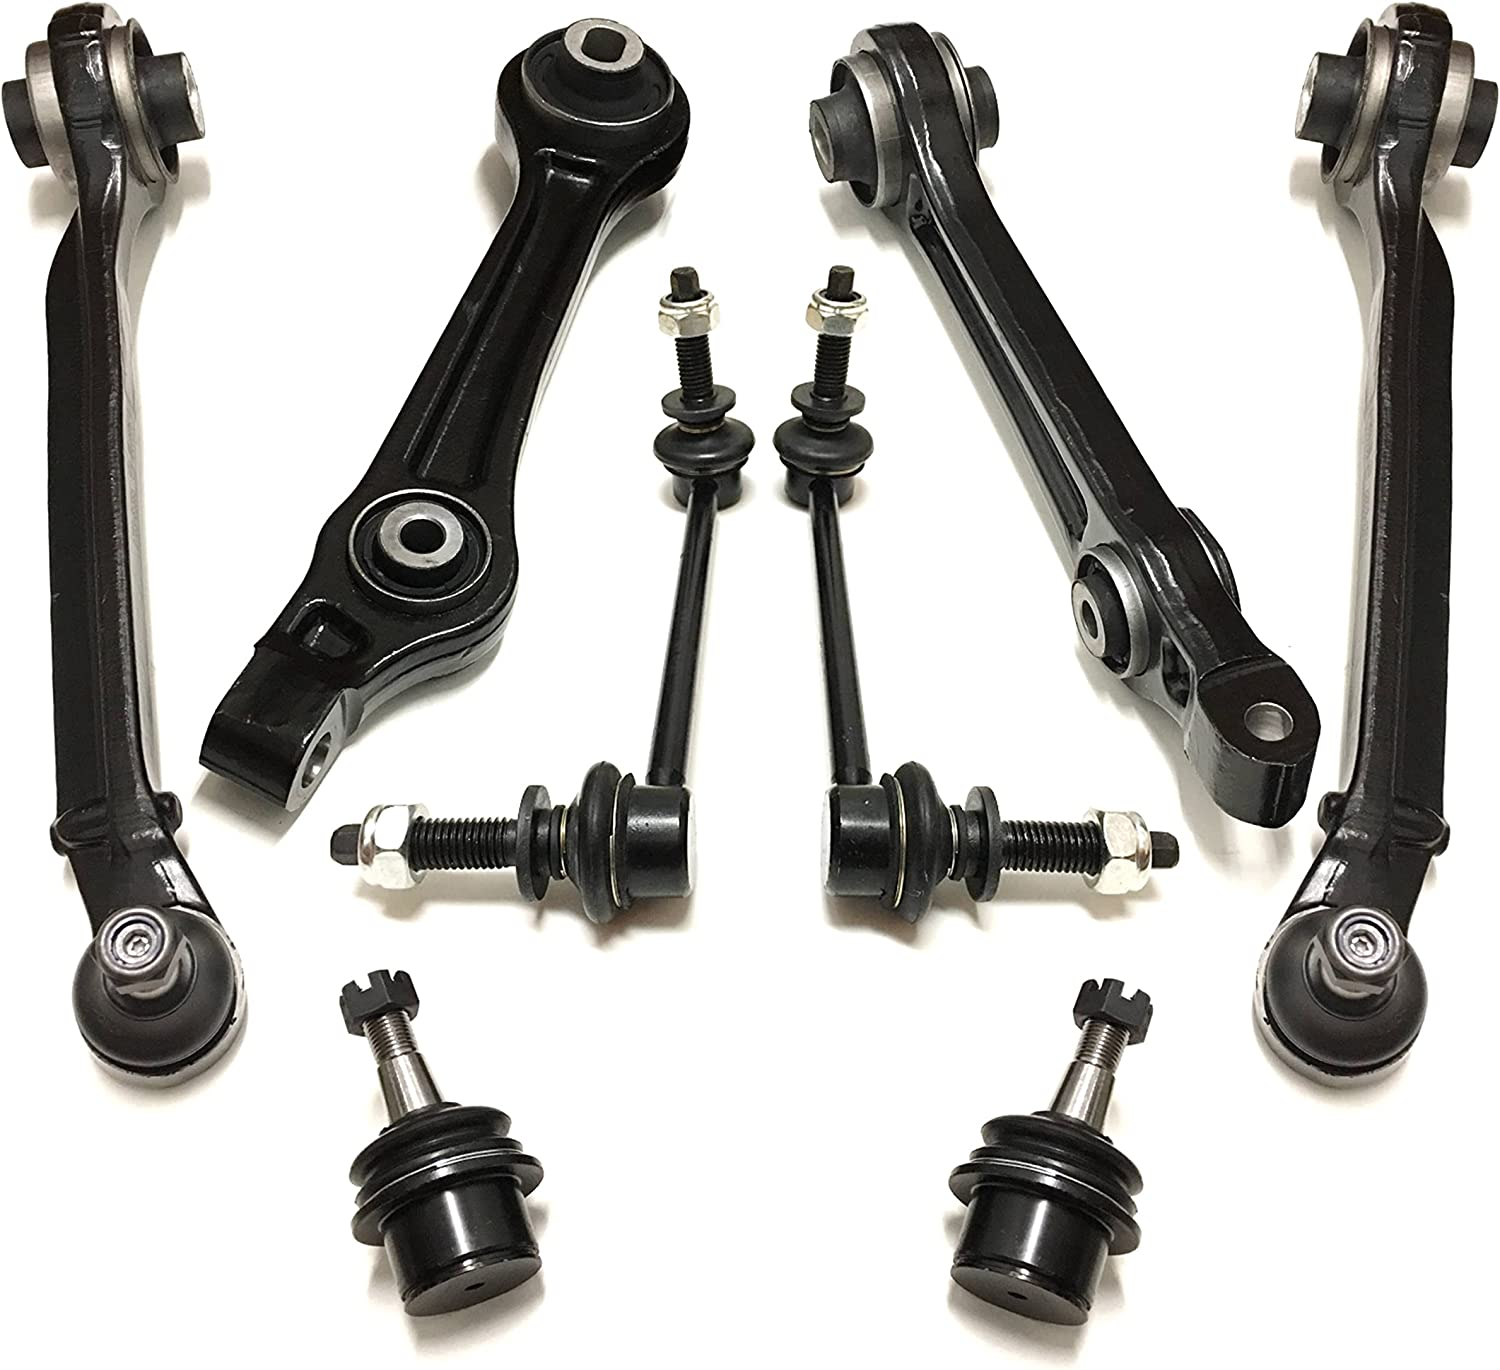 4Pcs Suspension Kit Front Lower Control Arms For 2005 2006-2010 Chrysler 300 RWD